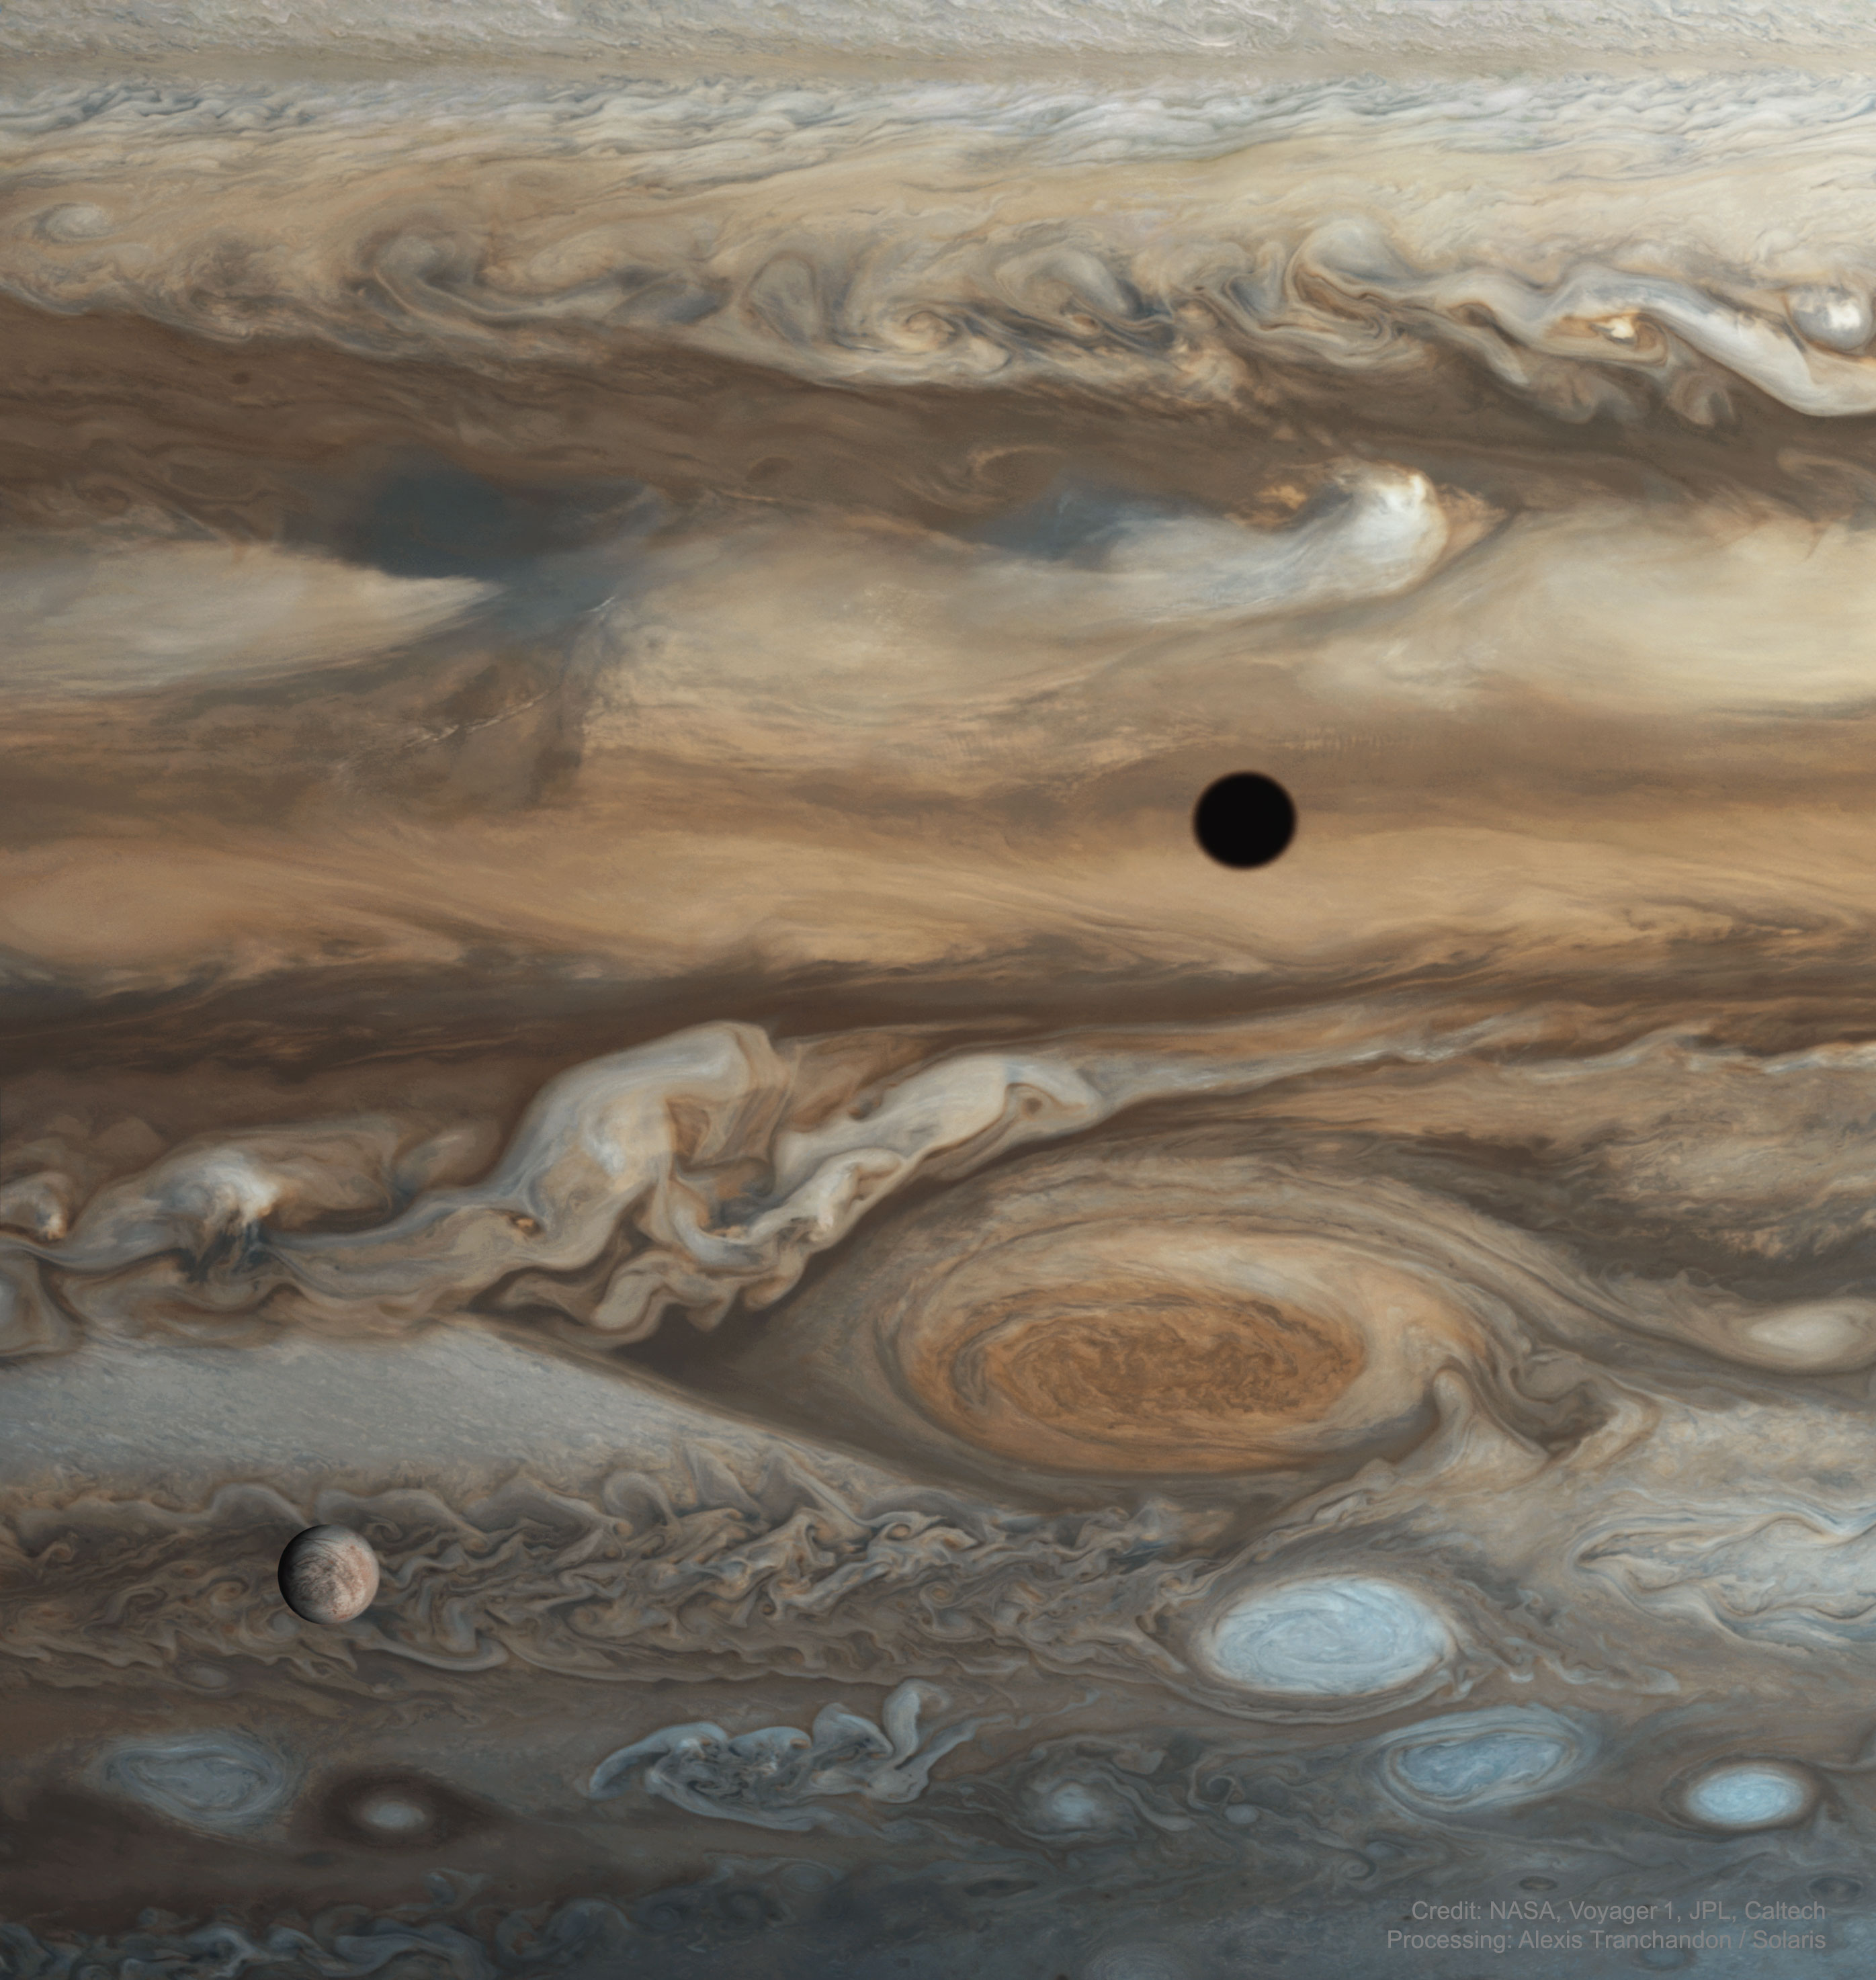 Europa and Jupiter from Voyager 1